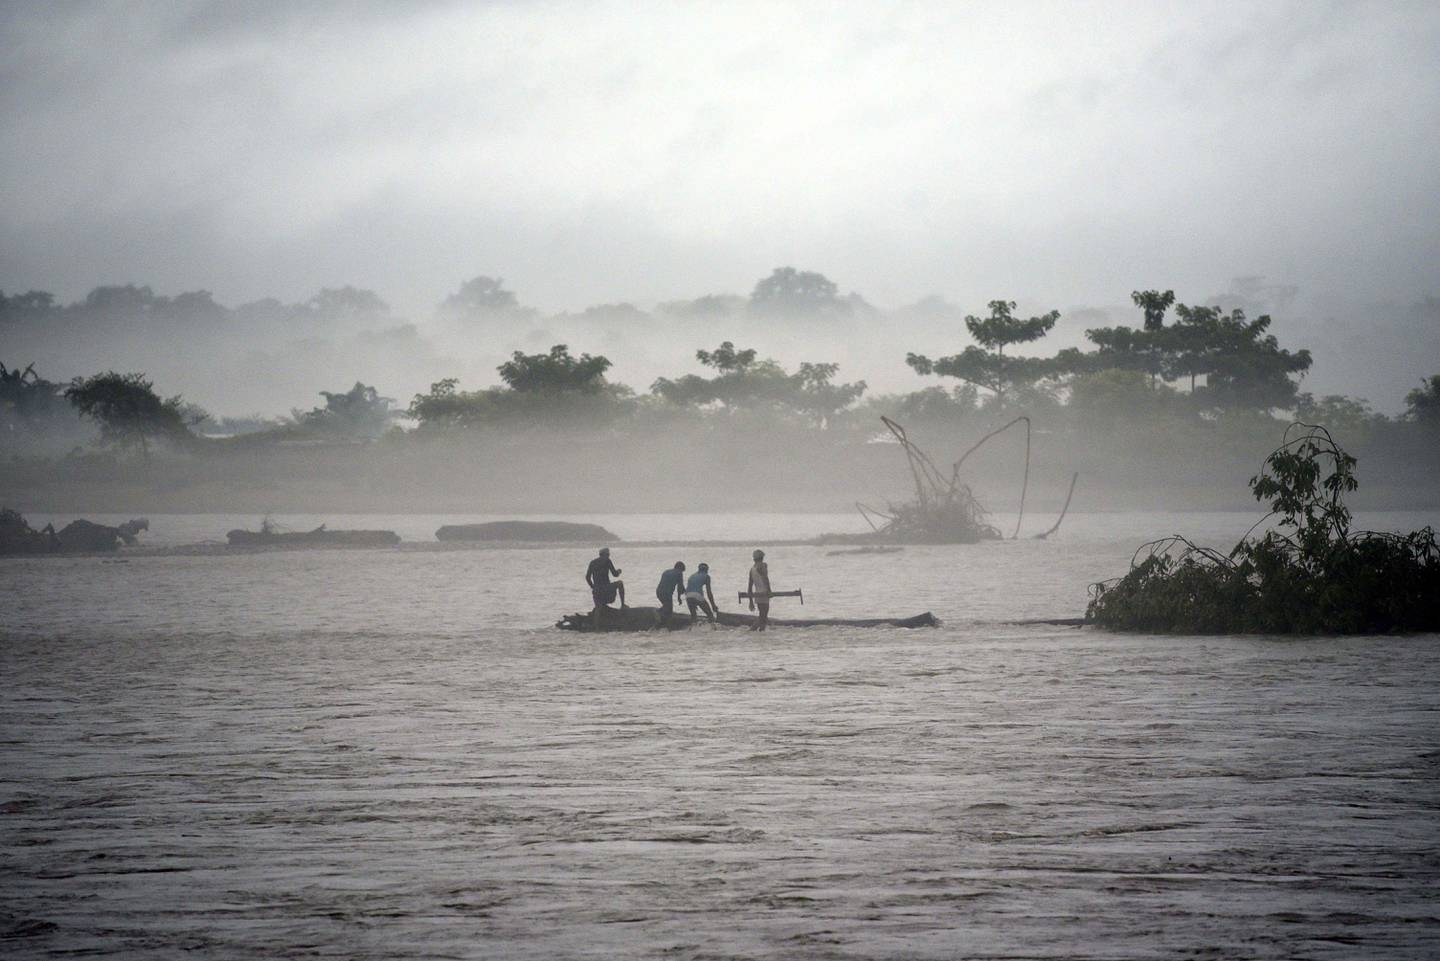 TOPSHOT - In this picture taken on July 15, 2019, Indian men catch a tree in the flooded Manas river, following heavy rainfall in Baksa district of Assam, in the North-Eastern states of India. Torrential monsoon rains swept away homes and triggered landslides across South Asia, affecting millions of people and spiking the death toll to at least 180, officials said on July 16.  / AFP / David TALUKDAR